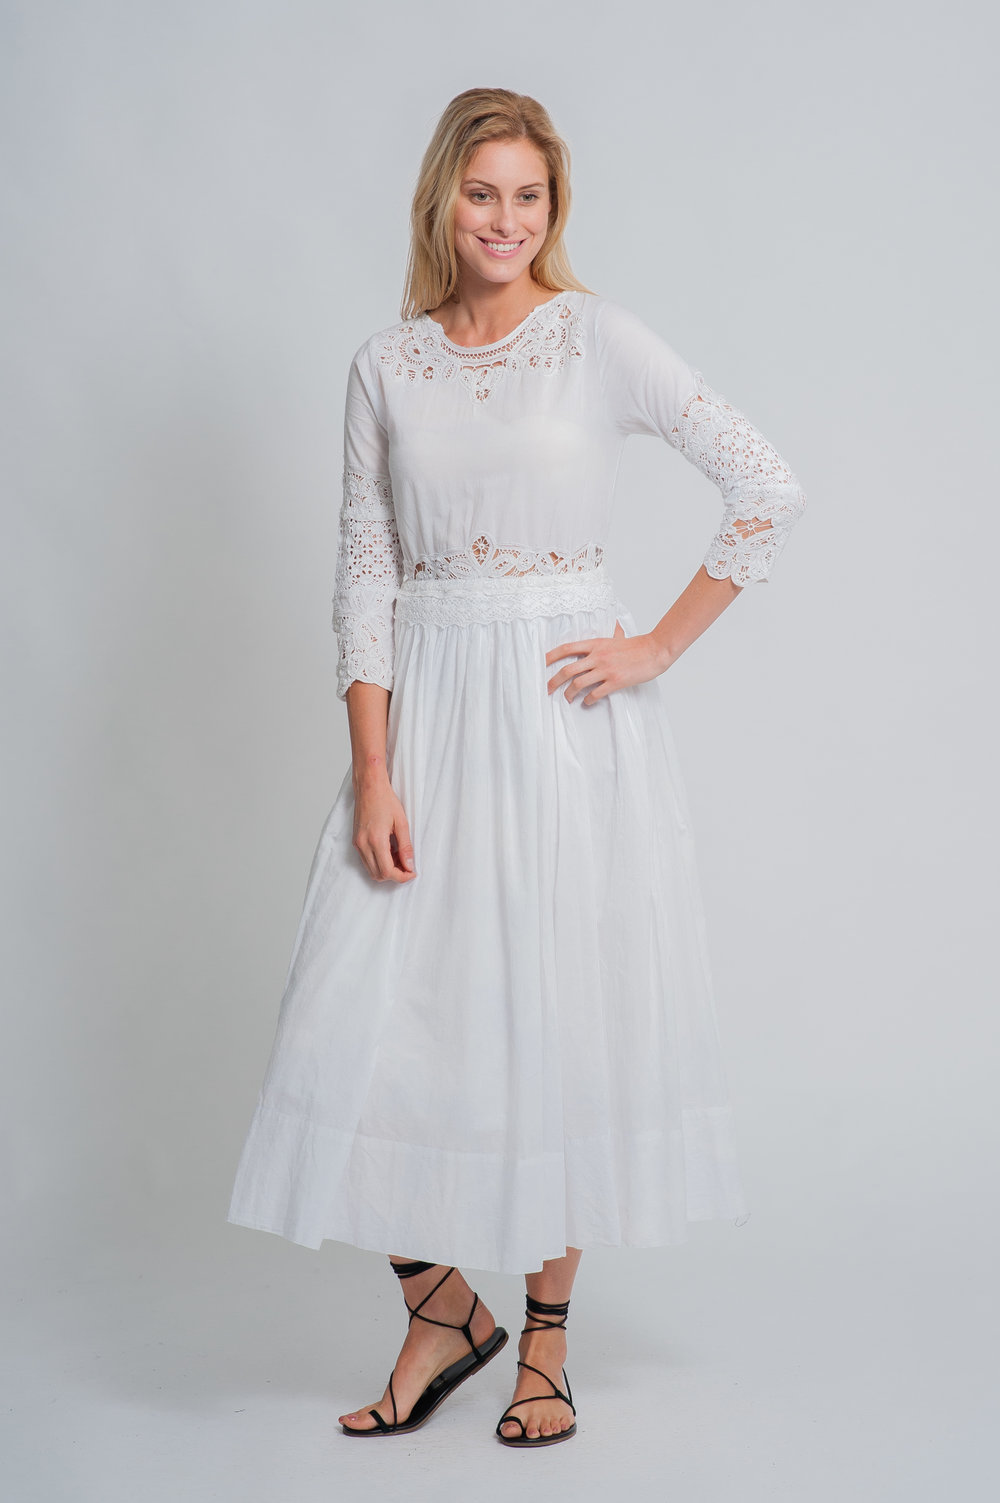 SS19-44 LA VIGNE BATON LACE COTTON VOILE MAXI DRESS